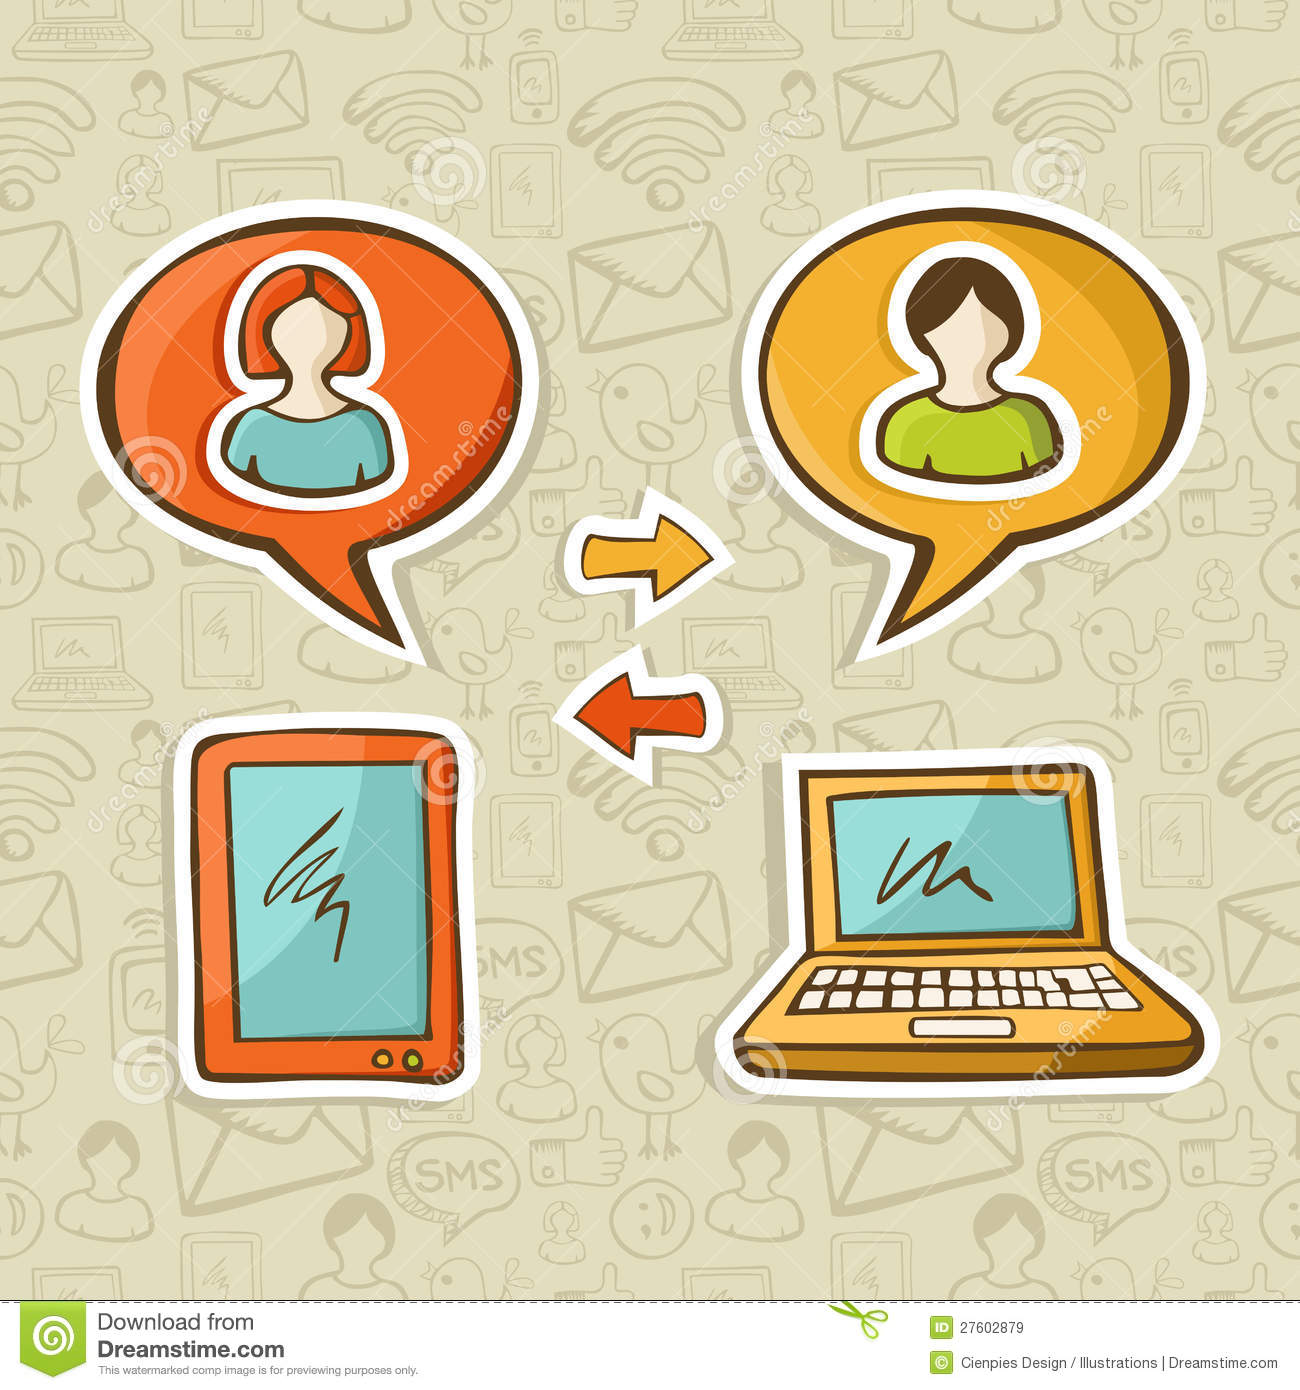 Social media gadgets connecting people